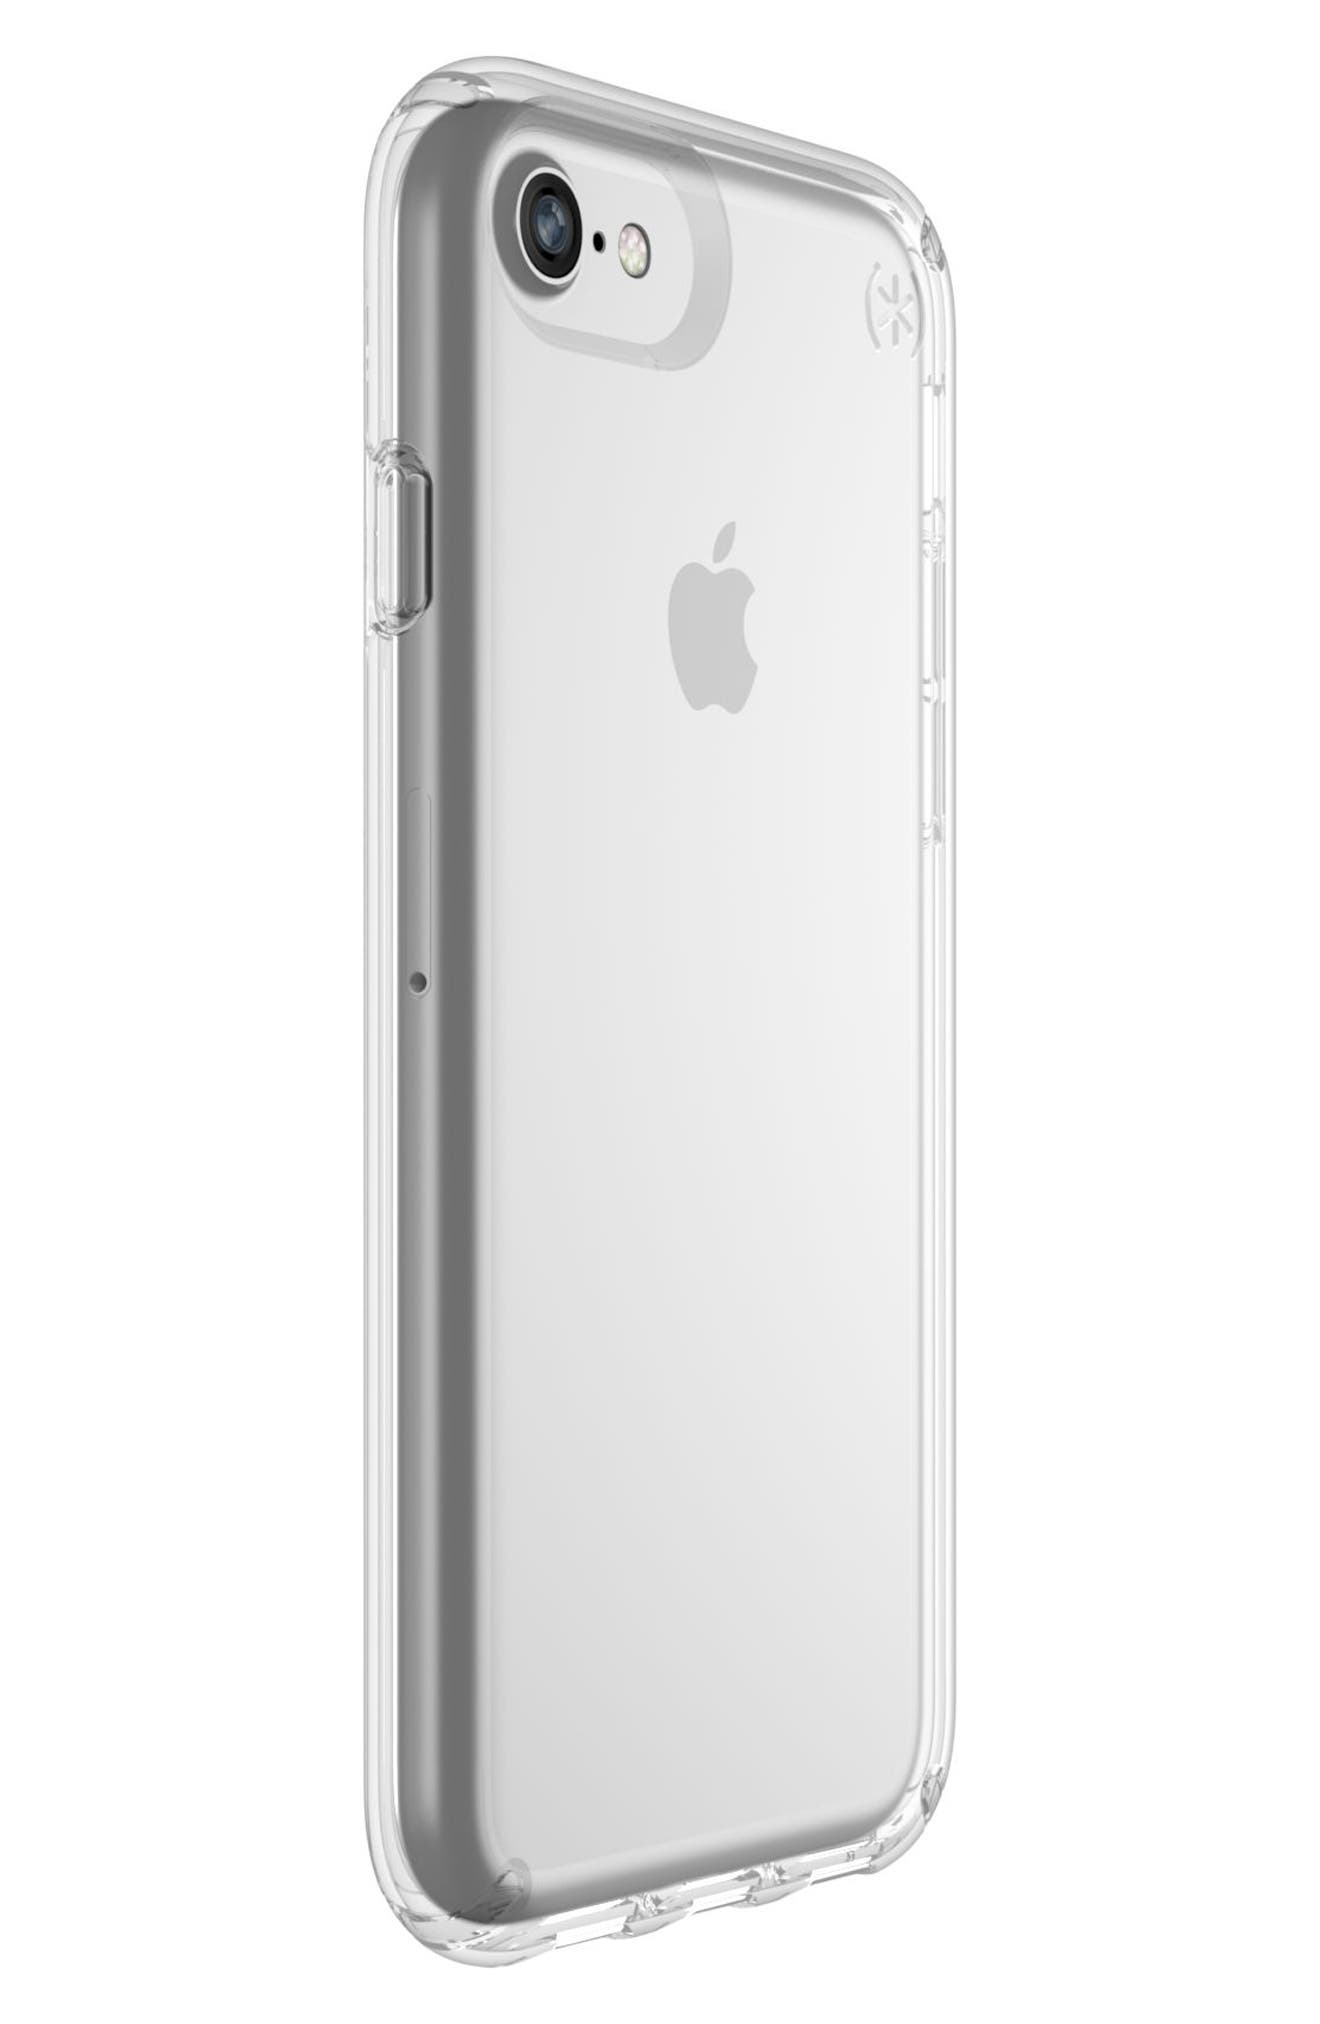 Transparent iPhone 6/6s/7/8 Case,                             Alternate thumbnail 2, color,                             Clear/ Clear